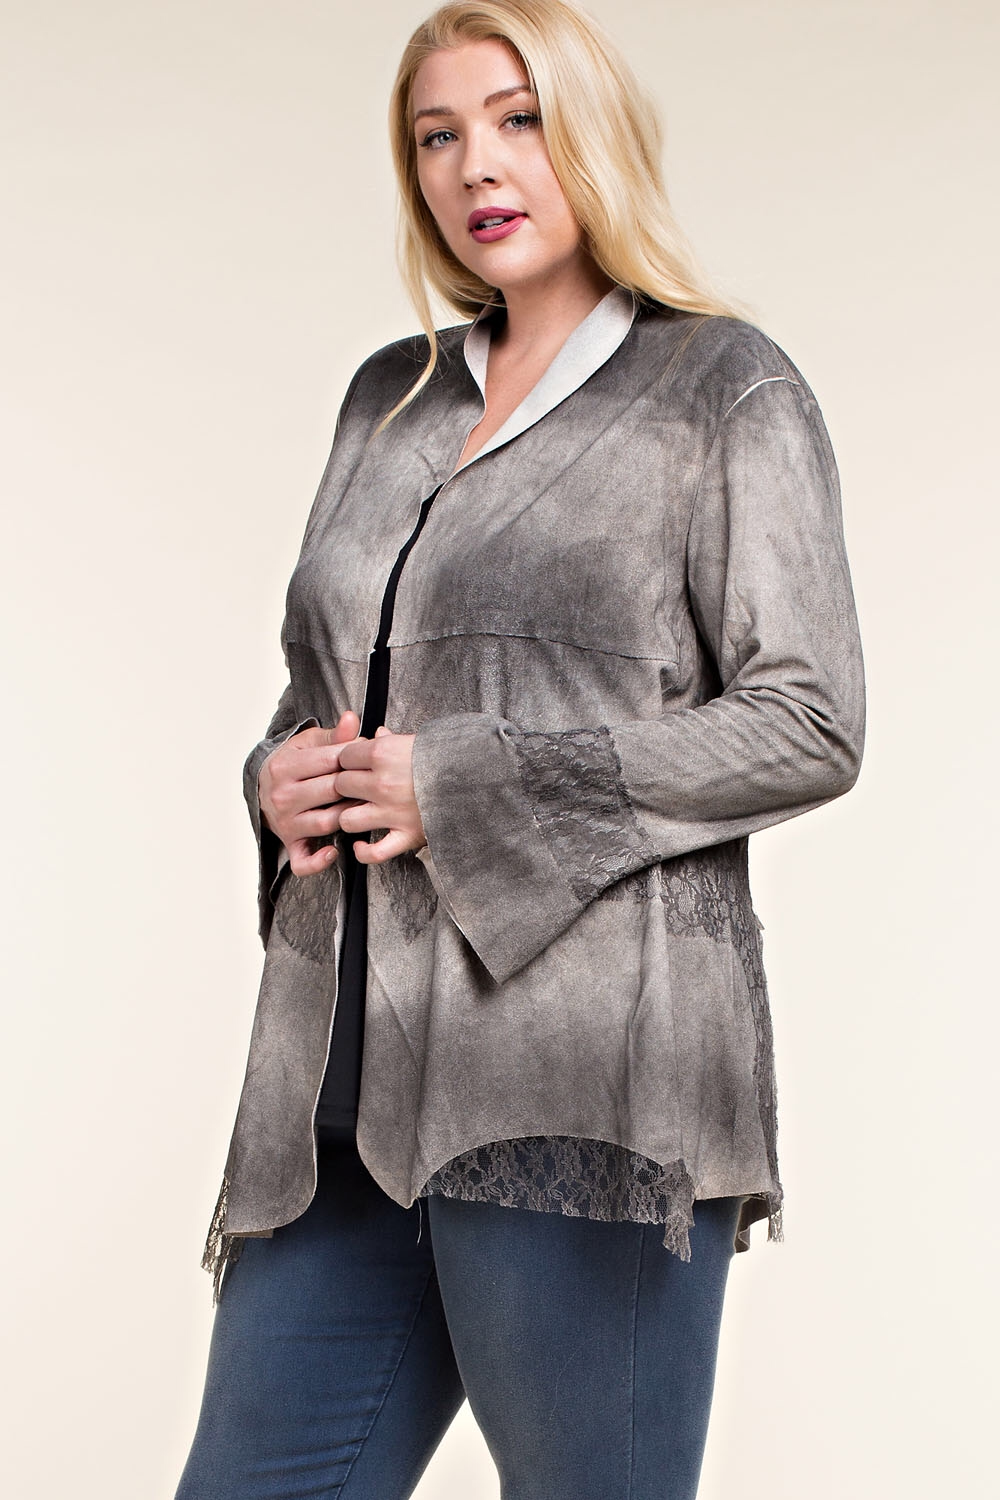 Brushed suede jacket with lace detail-ALL SIZES